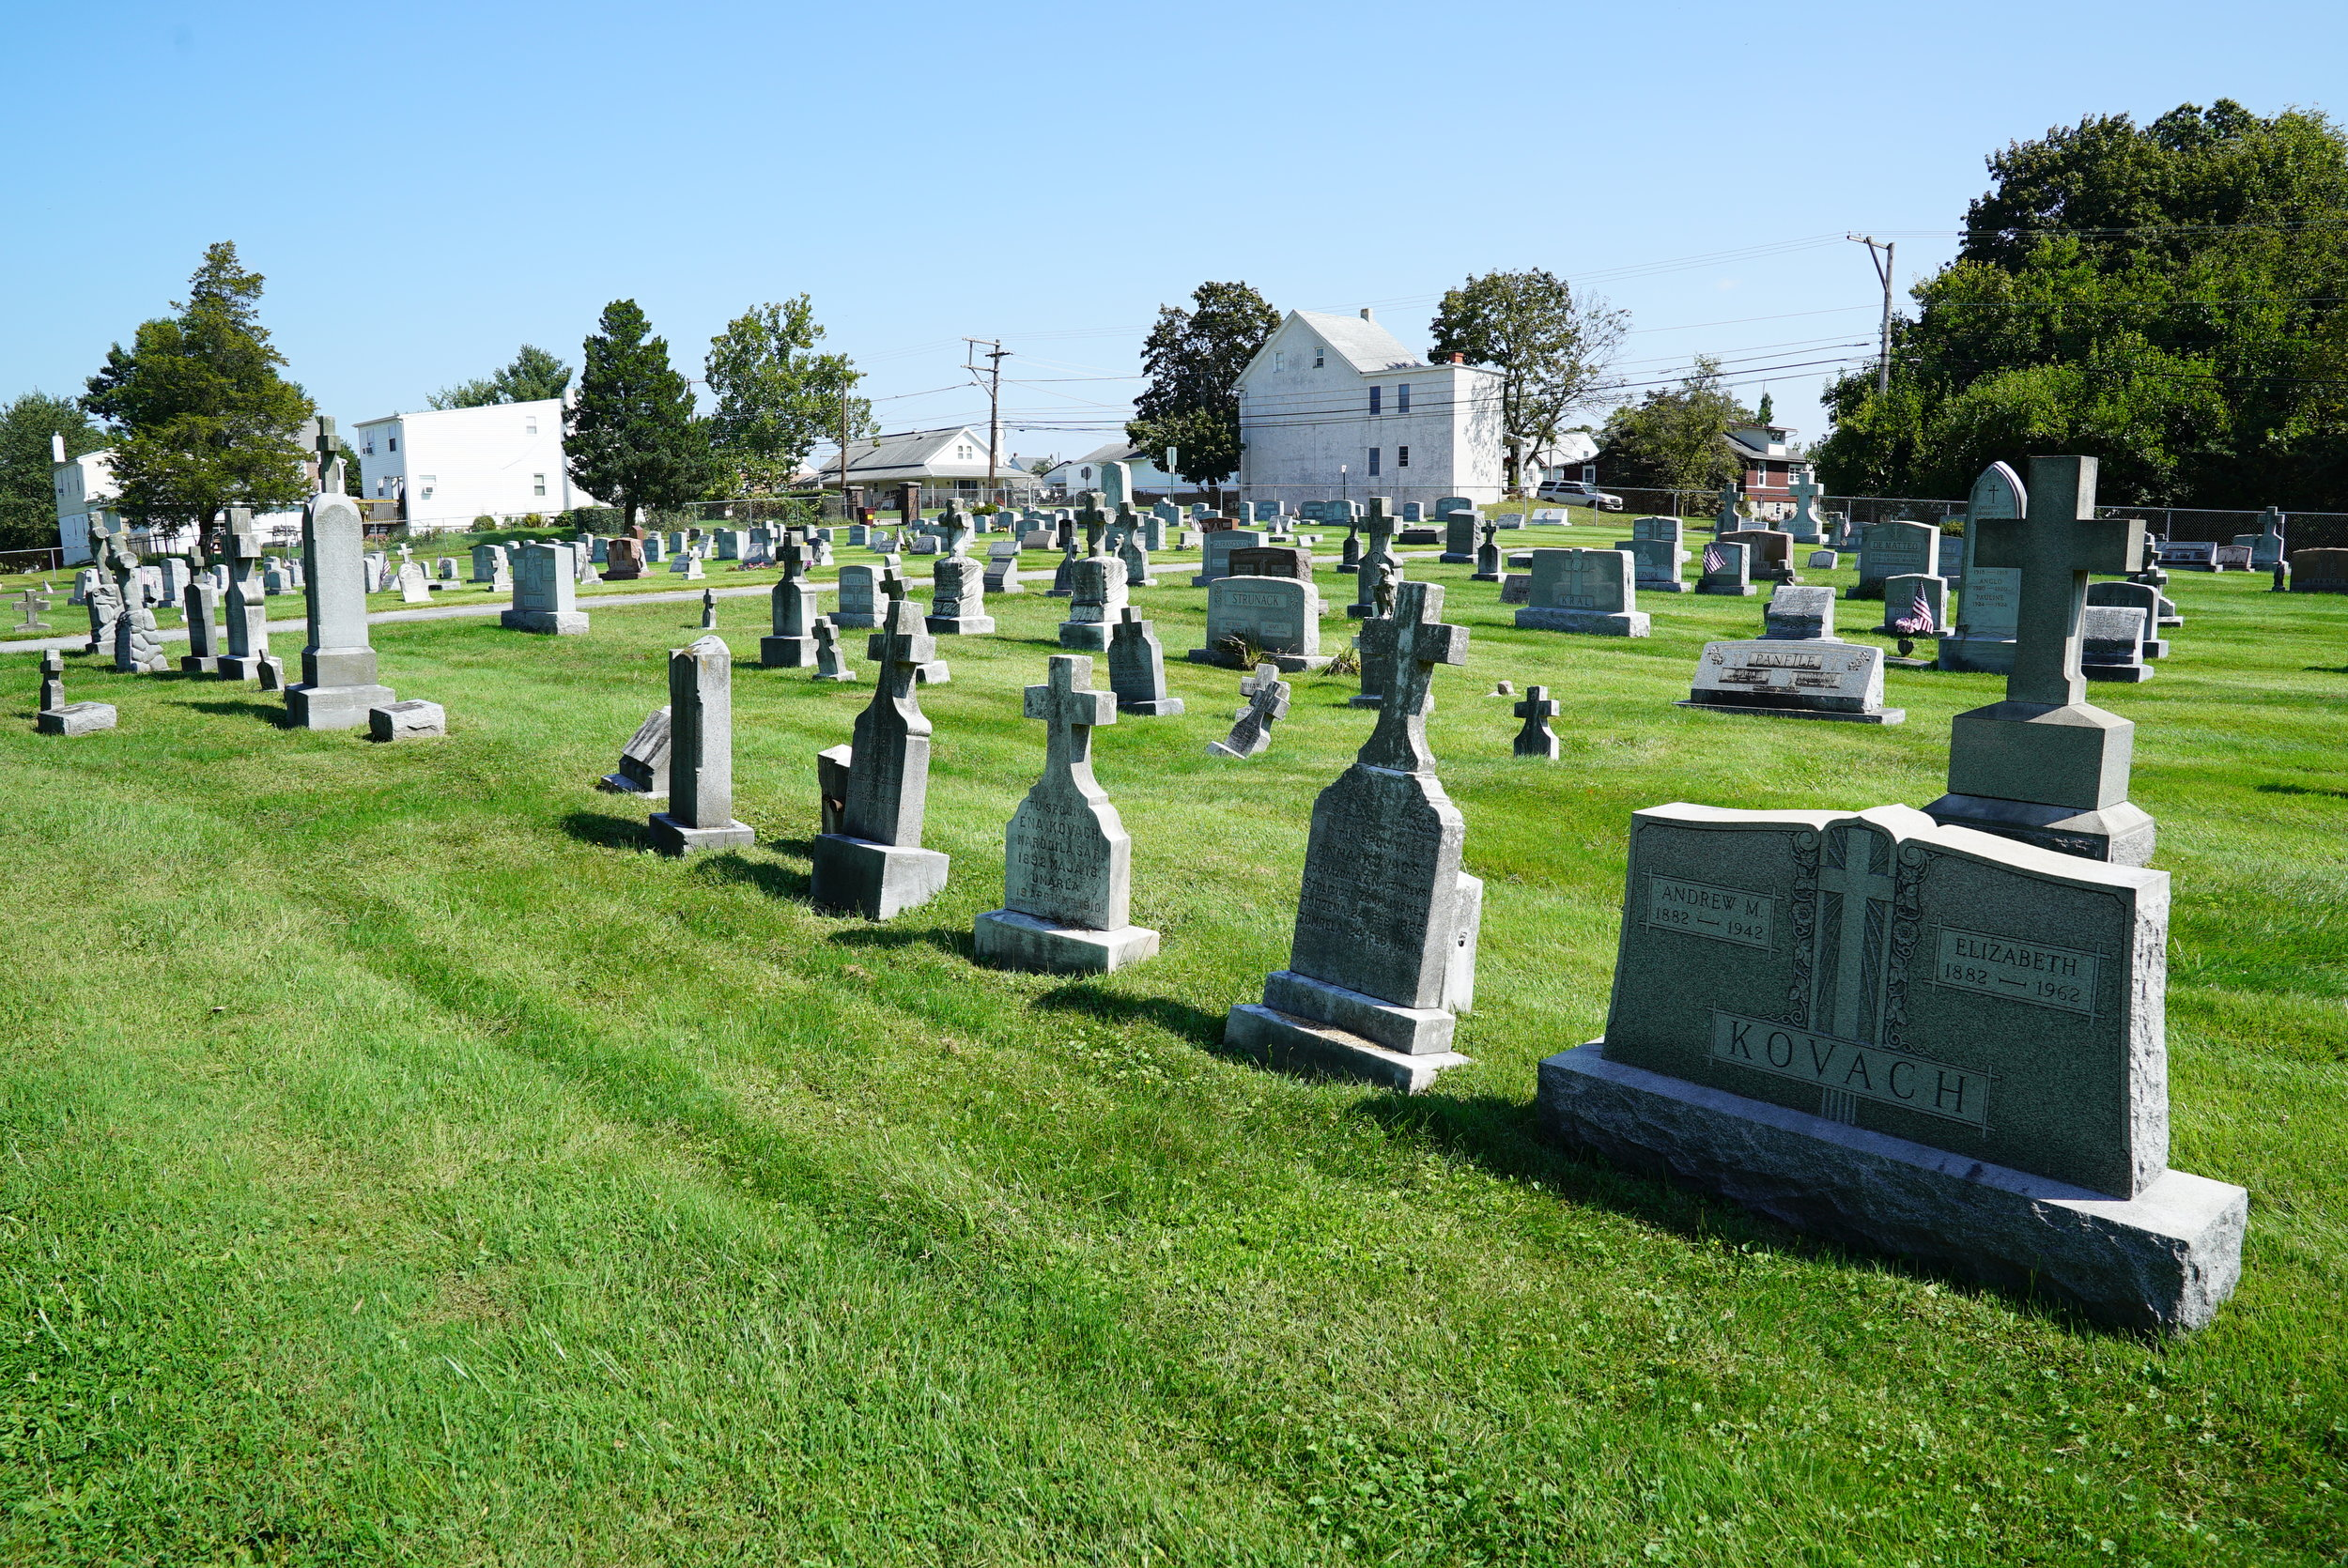 Holy Trinity Cemetery. Stowe, Pennsylvania. Operated by Saint Aloysius Catholic Parish.